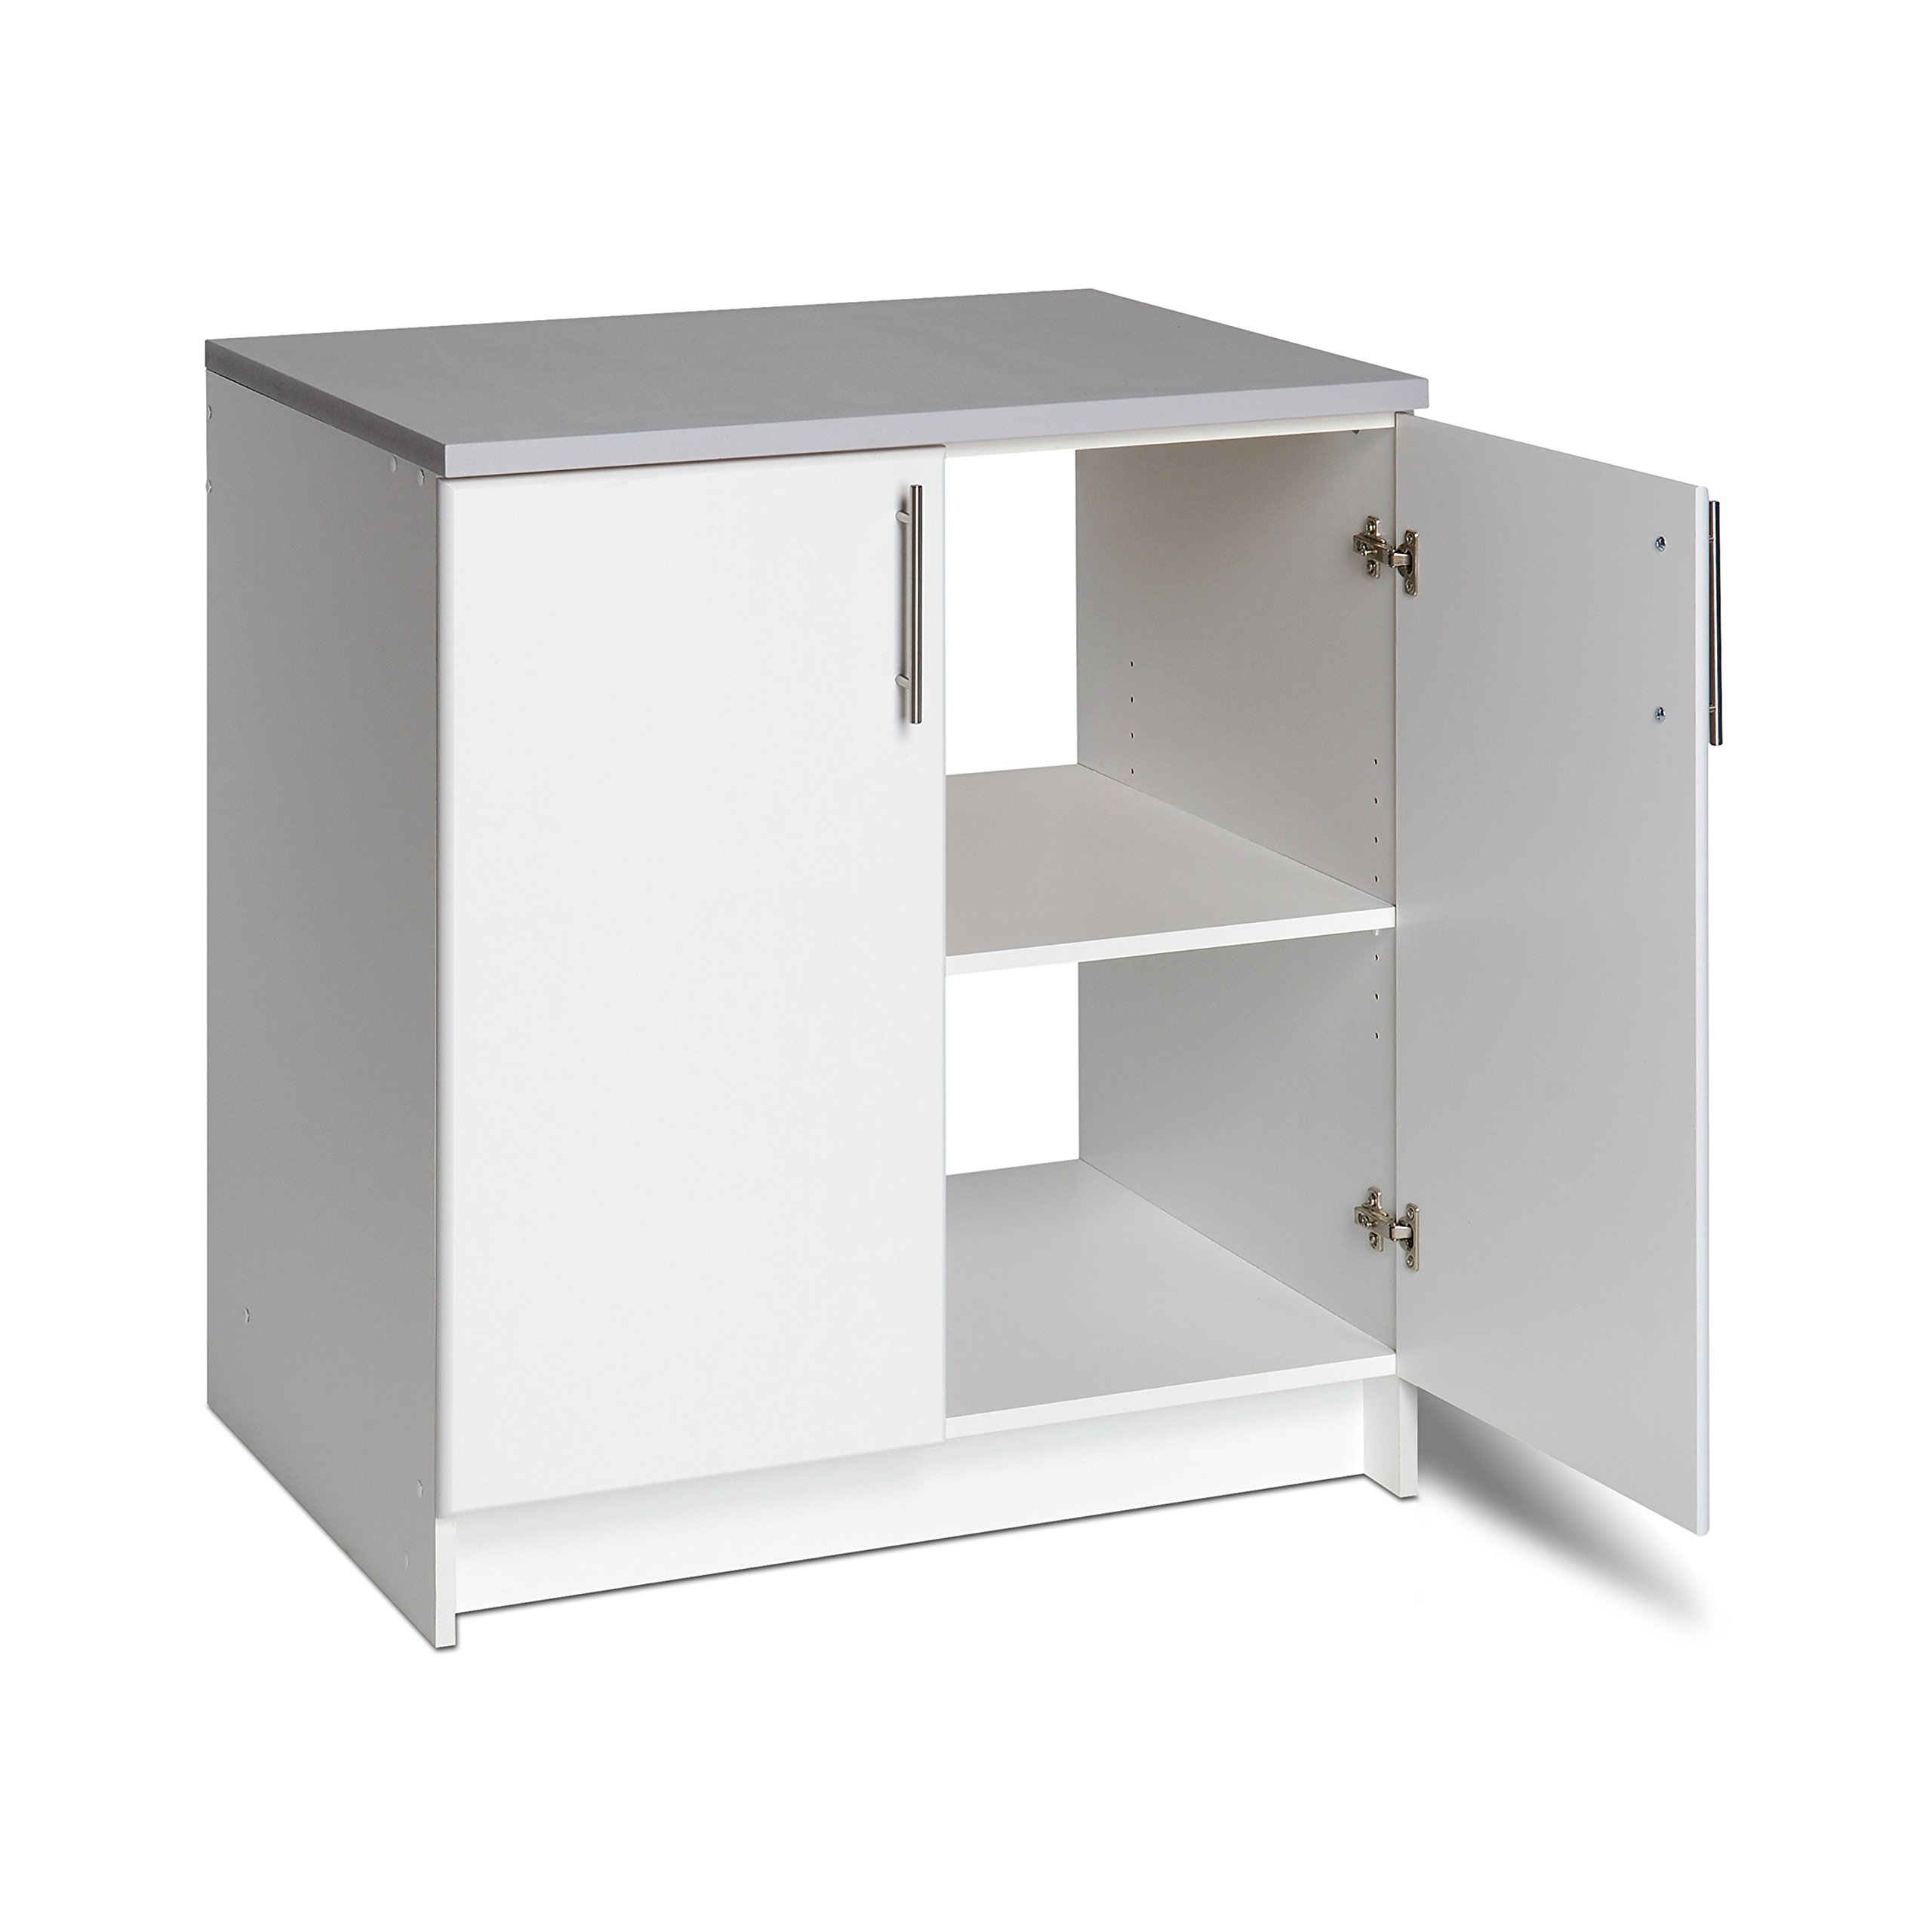 Elite 32'' Base Cabinet by Prepac (Image #3)